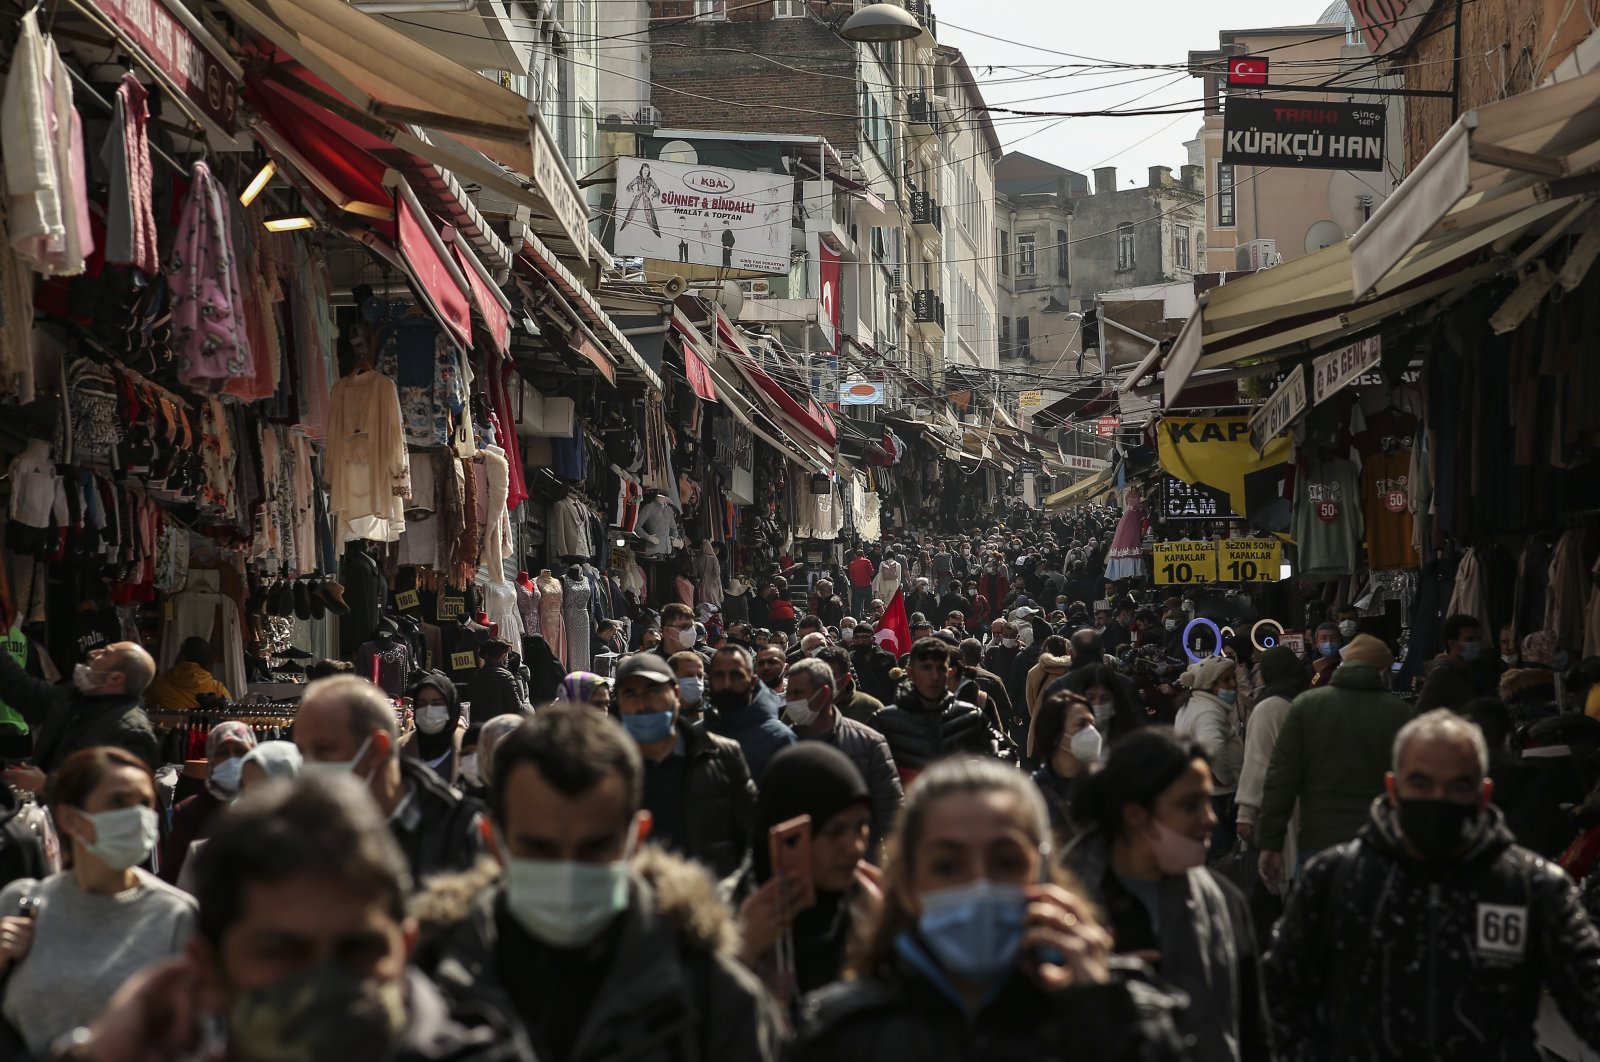 People walk in an open market in Istanbul, Monday, March 22, 2021. (AP Photo)